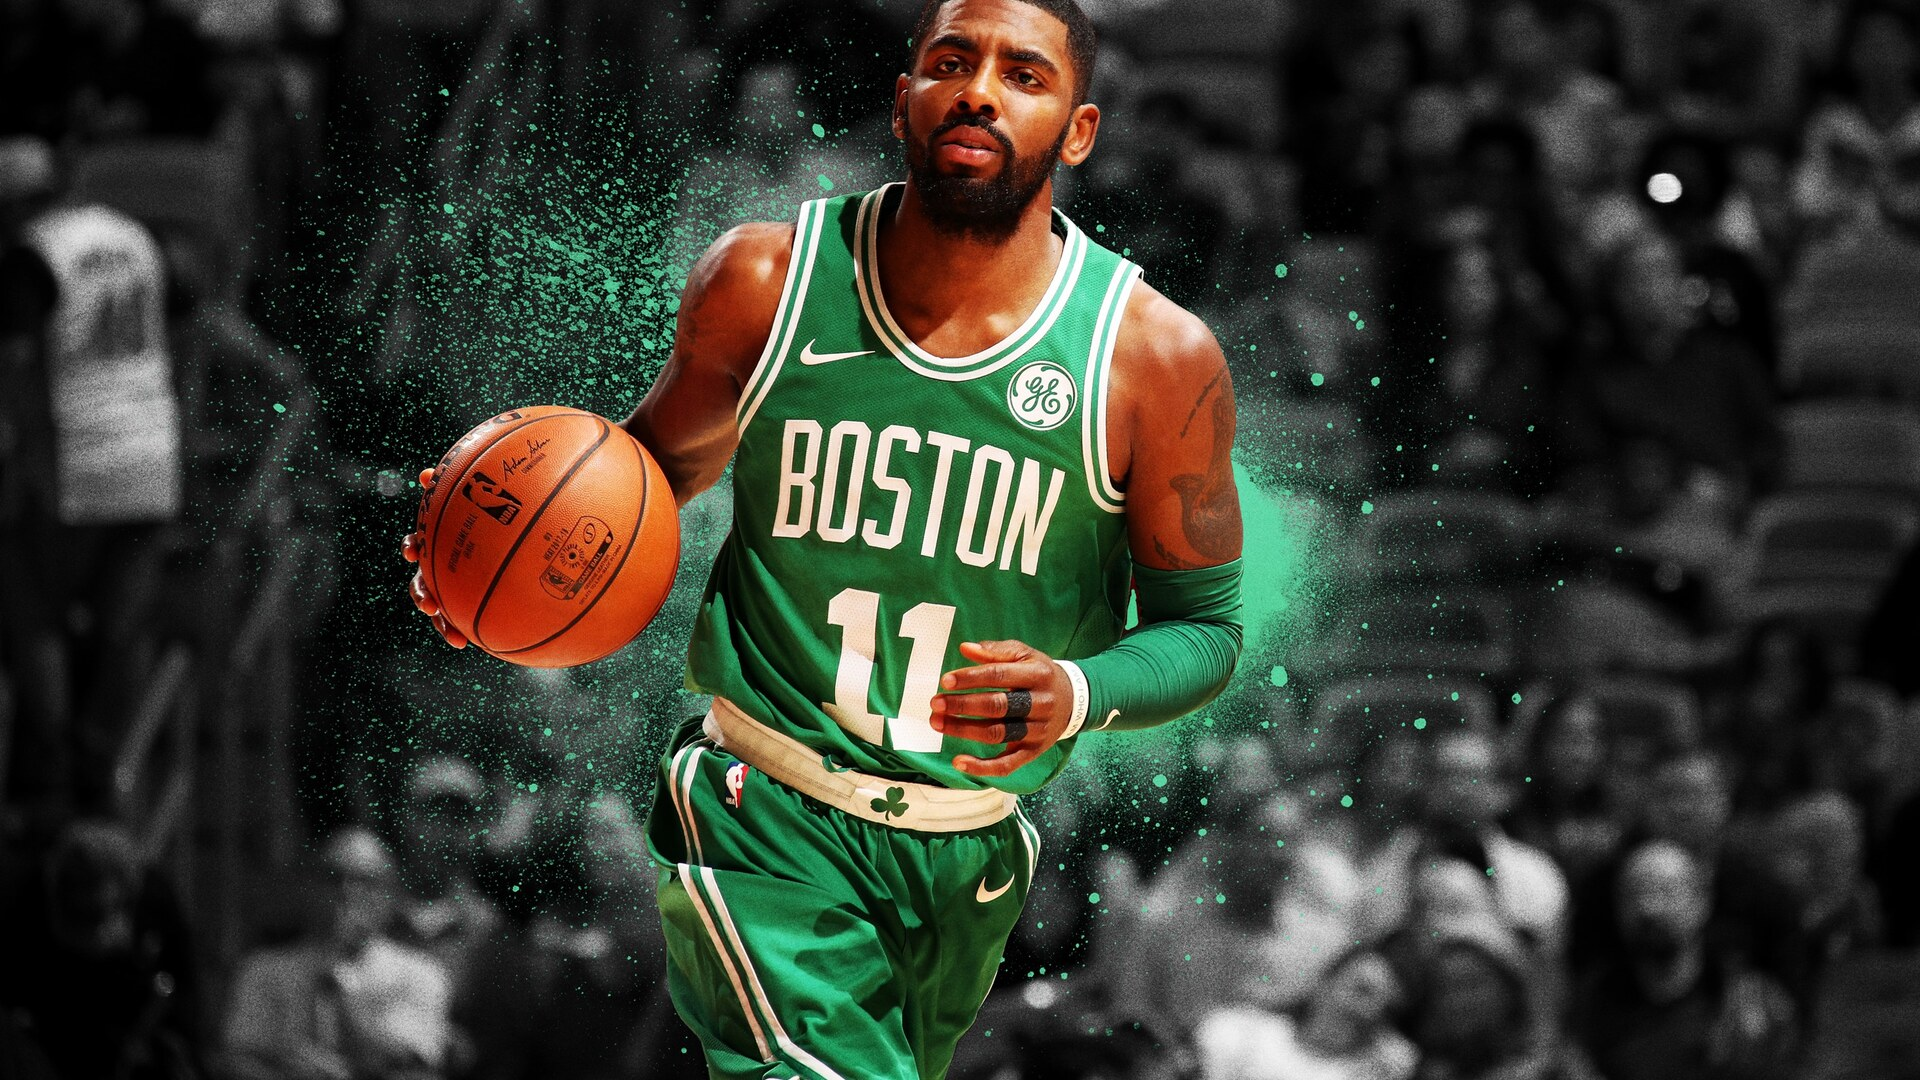 Cute Wallpapers For Girls Mobile 1920x1080 Kyrie Irving Laptop Full Hd 1080p Hd 4k